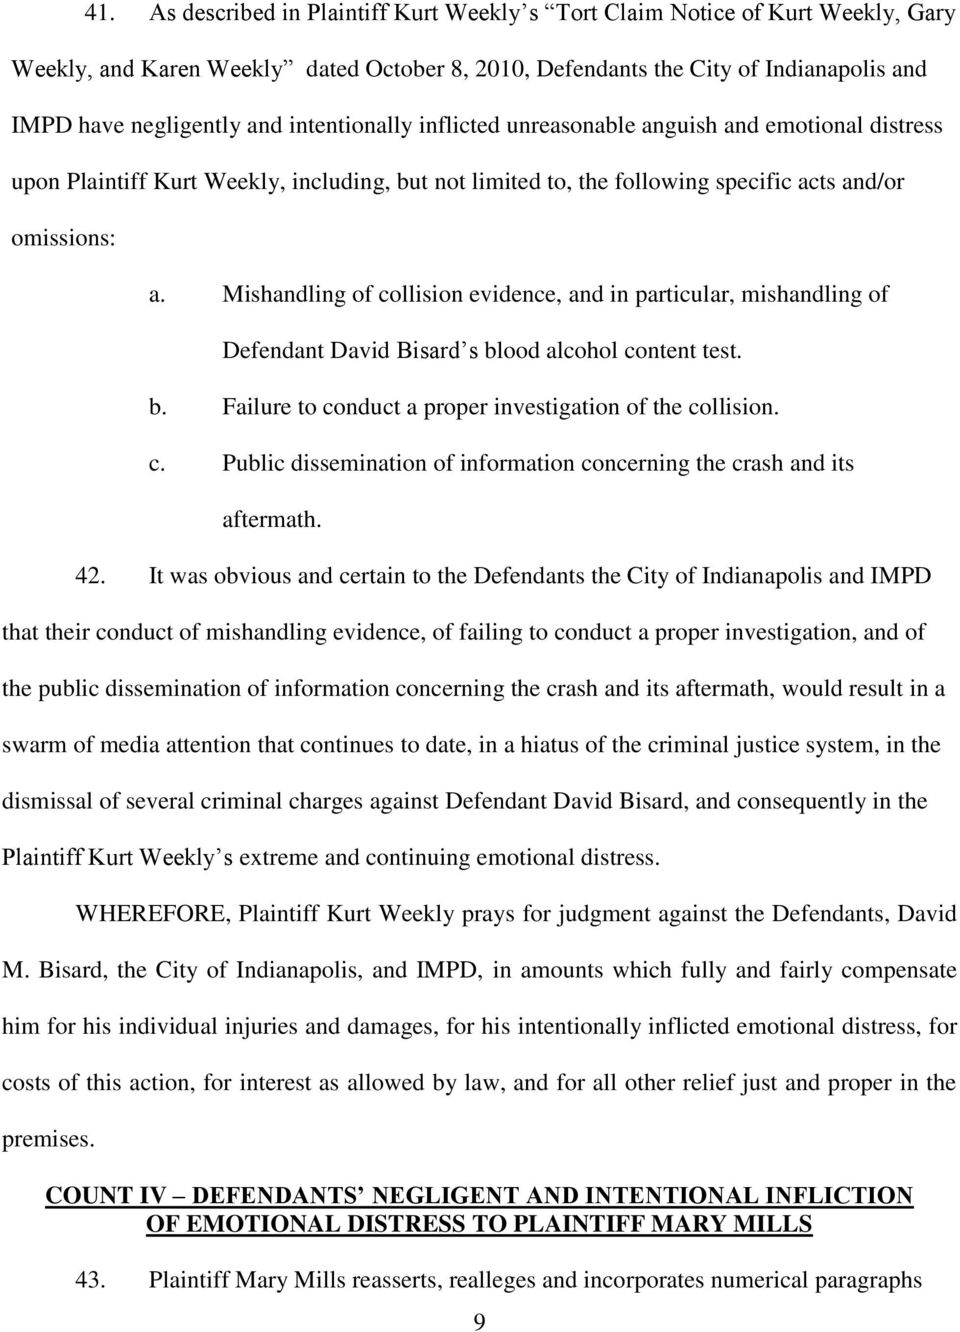 Mishandling of collision evidence, and in particular, mishandling of Defendant David Bisard s blood alcohol content test. b. Failure to conduct a proper investigation of the collision. c. Public dissemination of information concerning the crash and its aftermath.